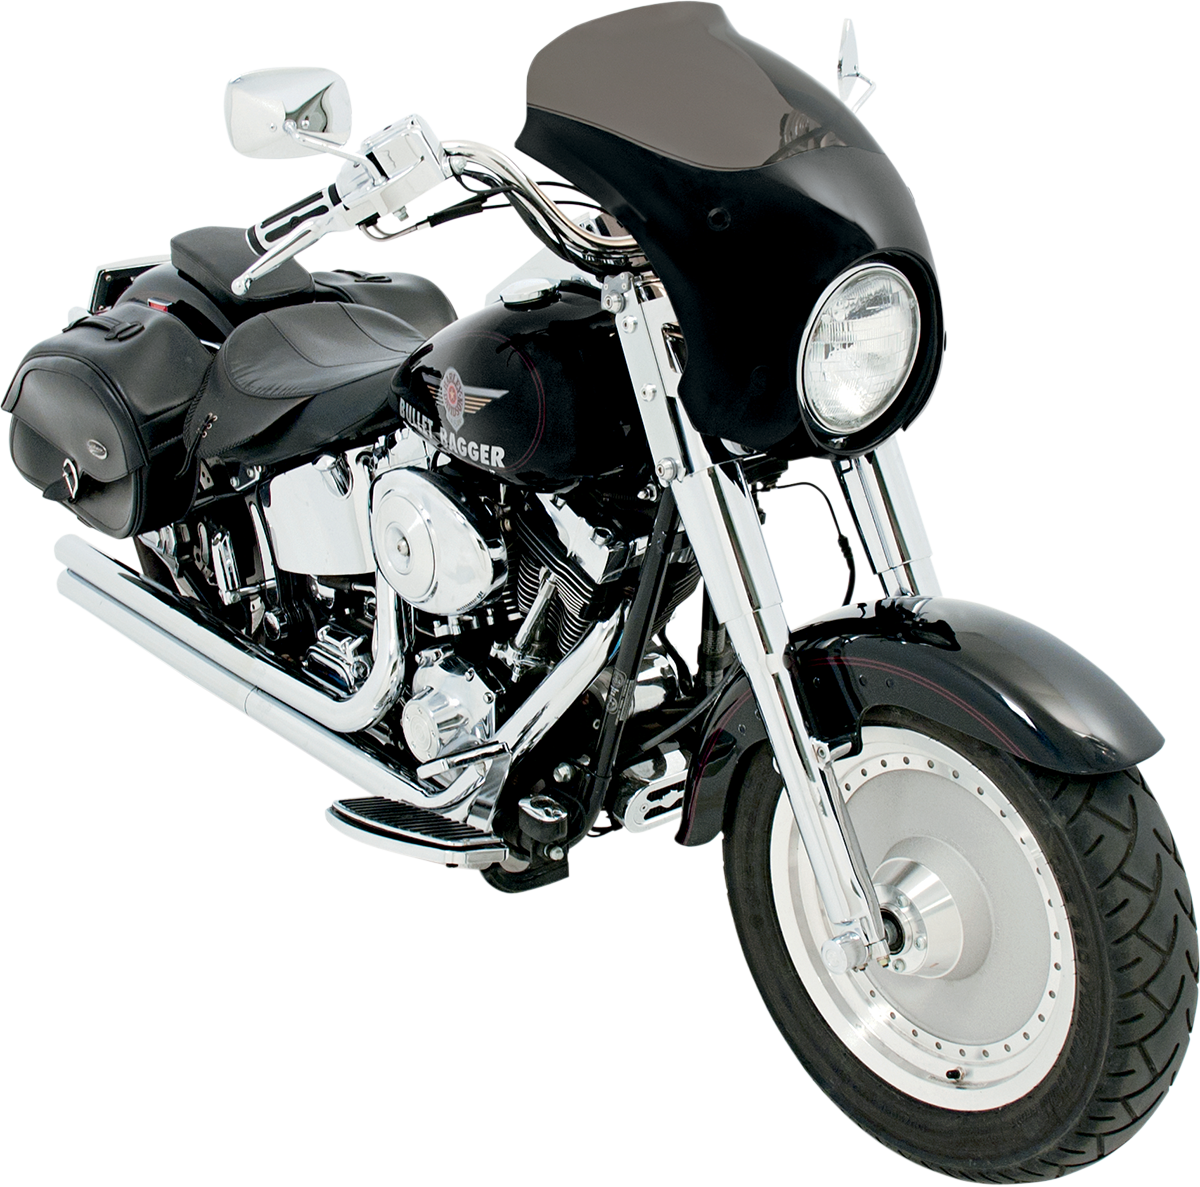 Memphis Shades Bullet Fairing & Polished Mount Kit for 86-17 Harley Softail